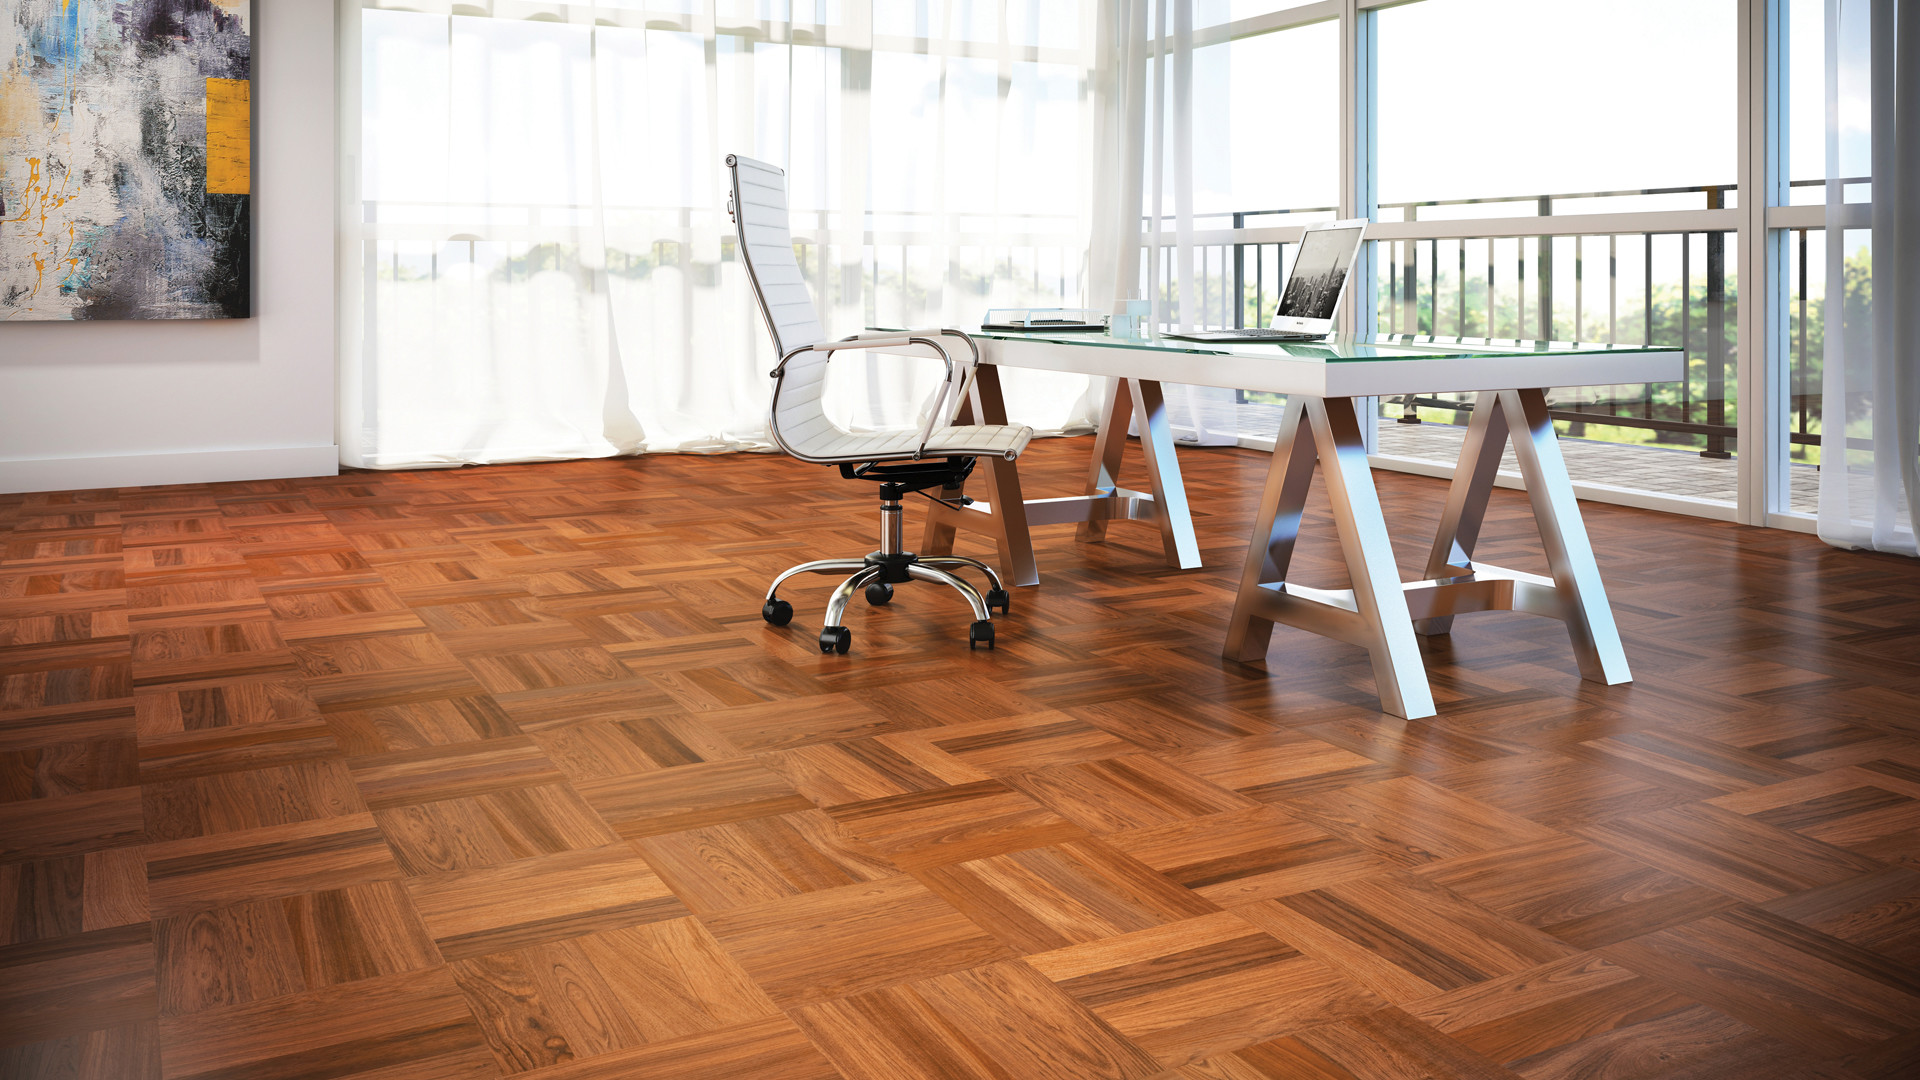 images of red oak hardwood floors of 4 latest hardwood flooring trends of 2018 lauzon flooring in hardwood floors made out of our domestic species hard maple red oak and yellow birch from our ambiance collection are now offered in wider and longer